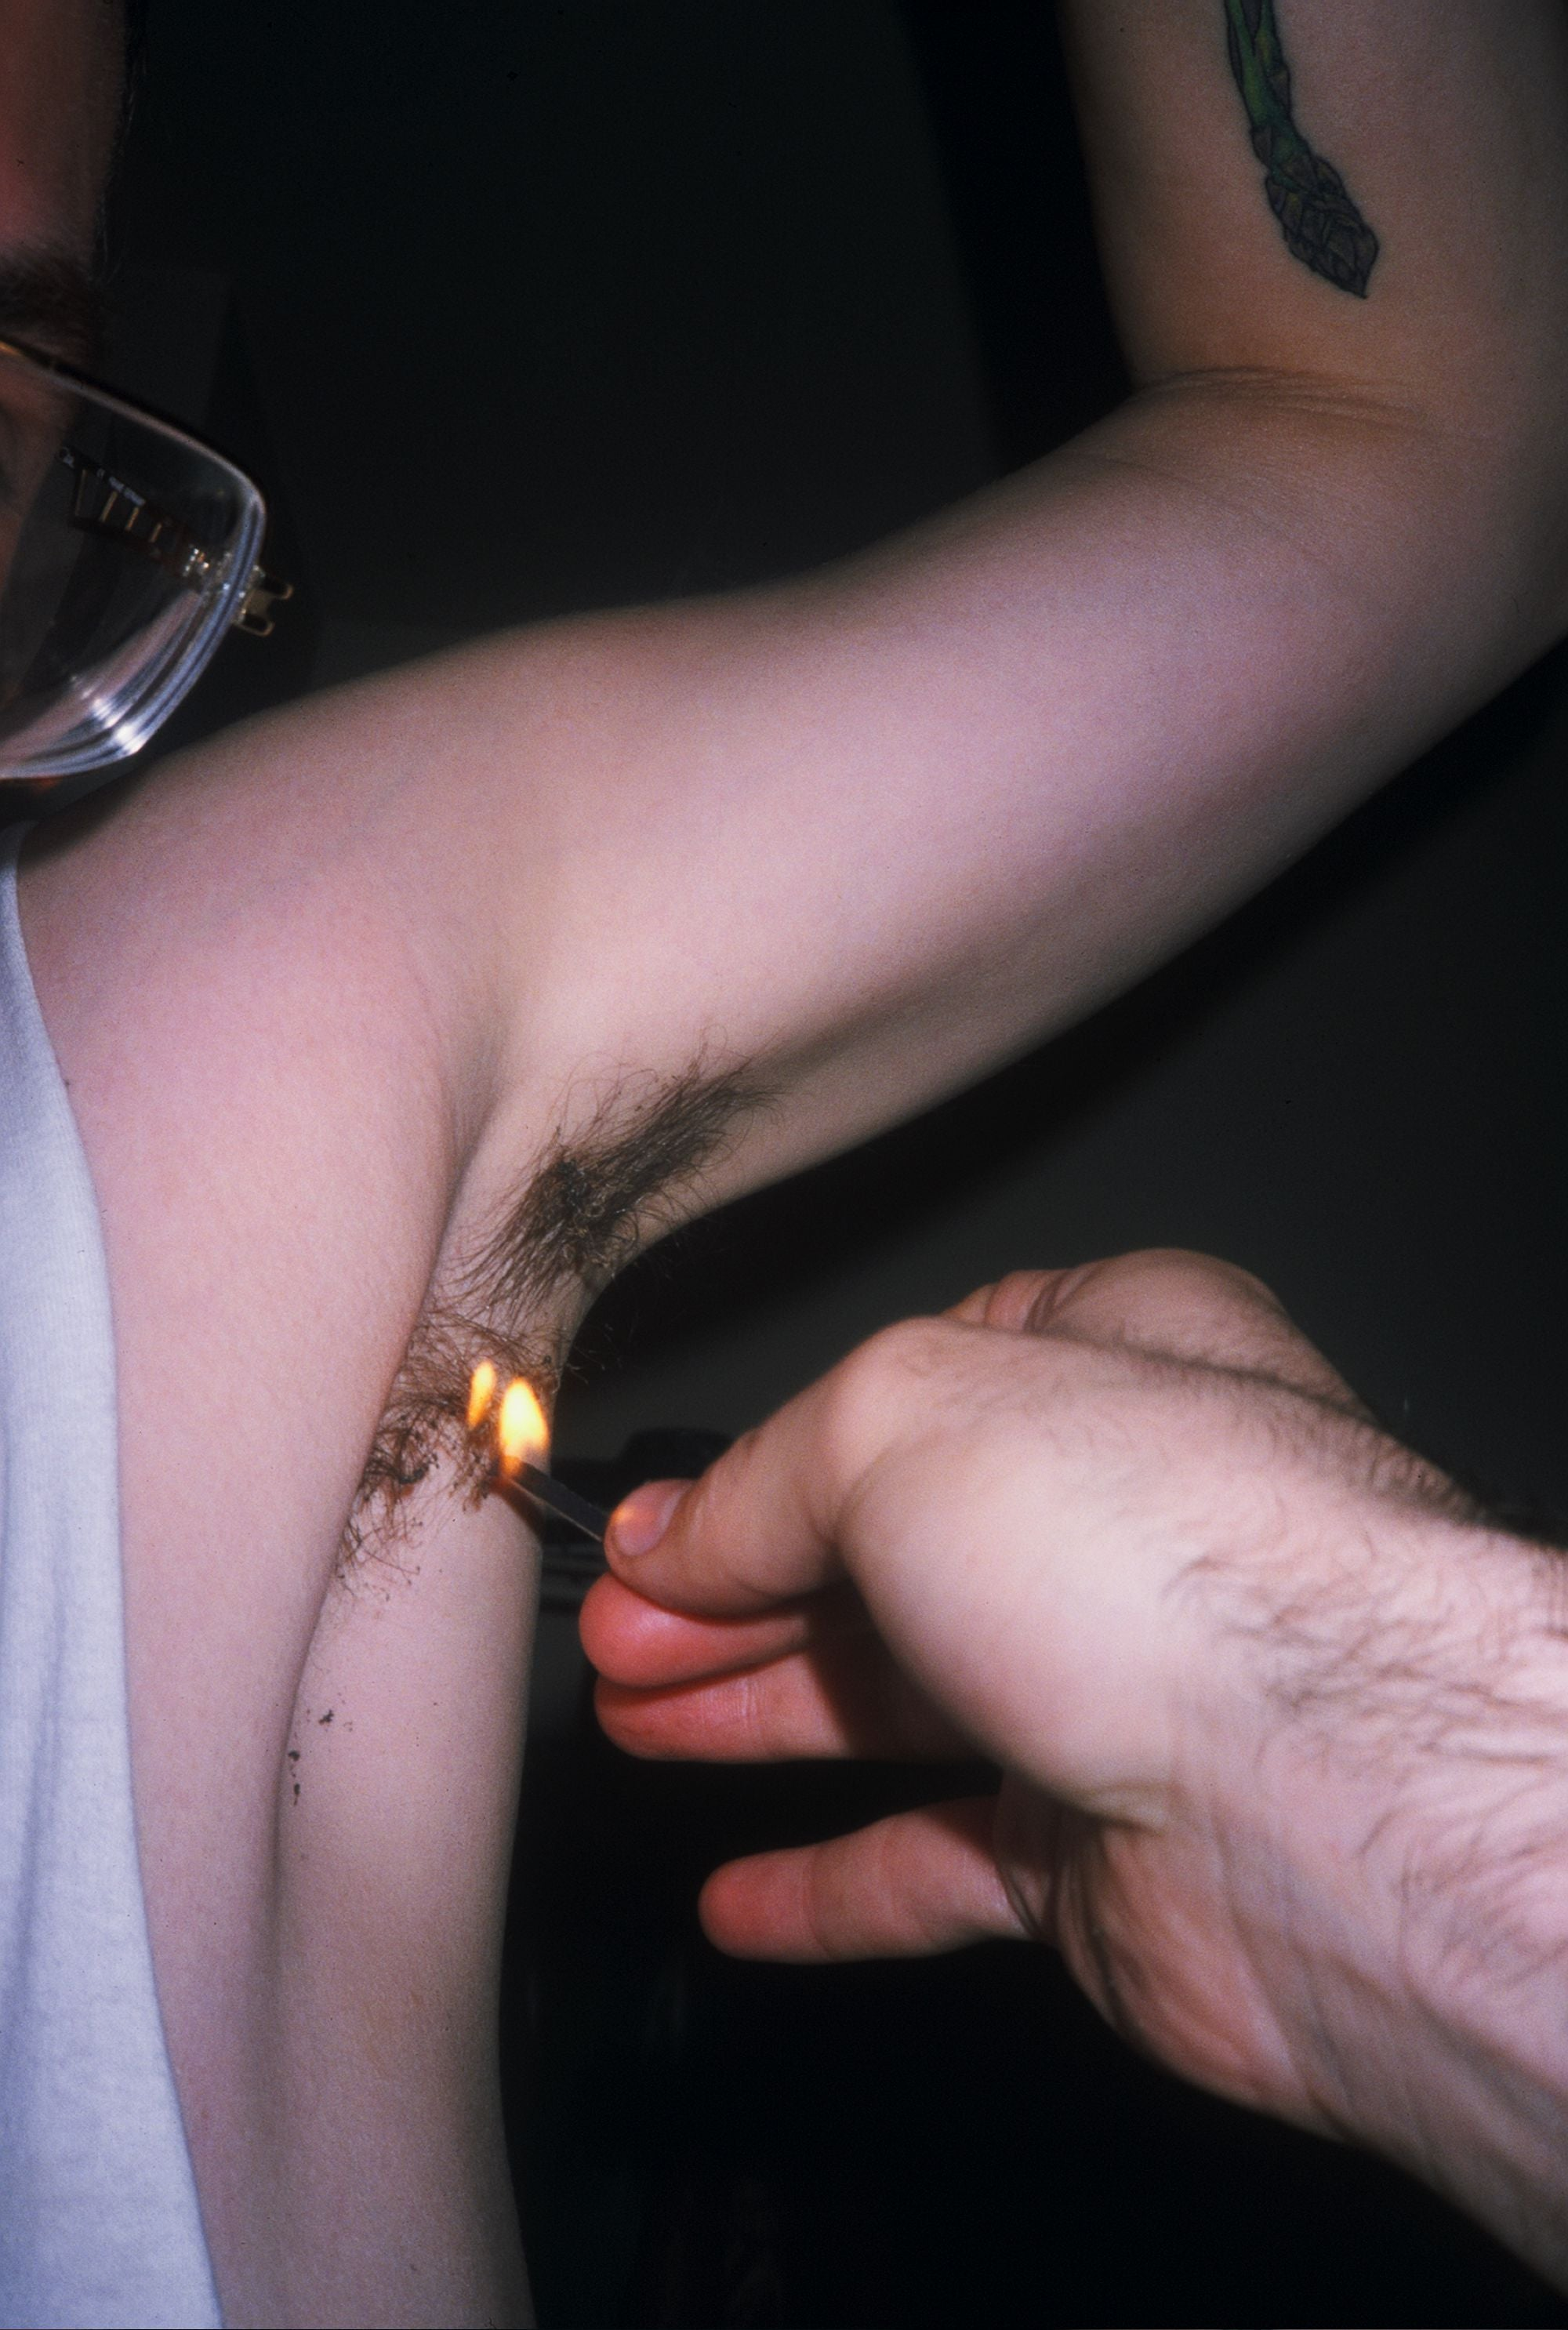 Bruce LaBruce, Cure for Crabs, 2004